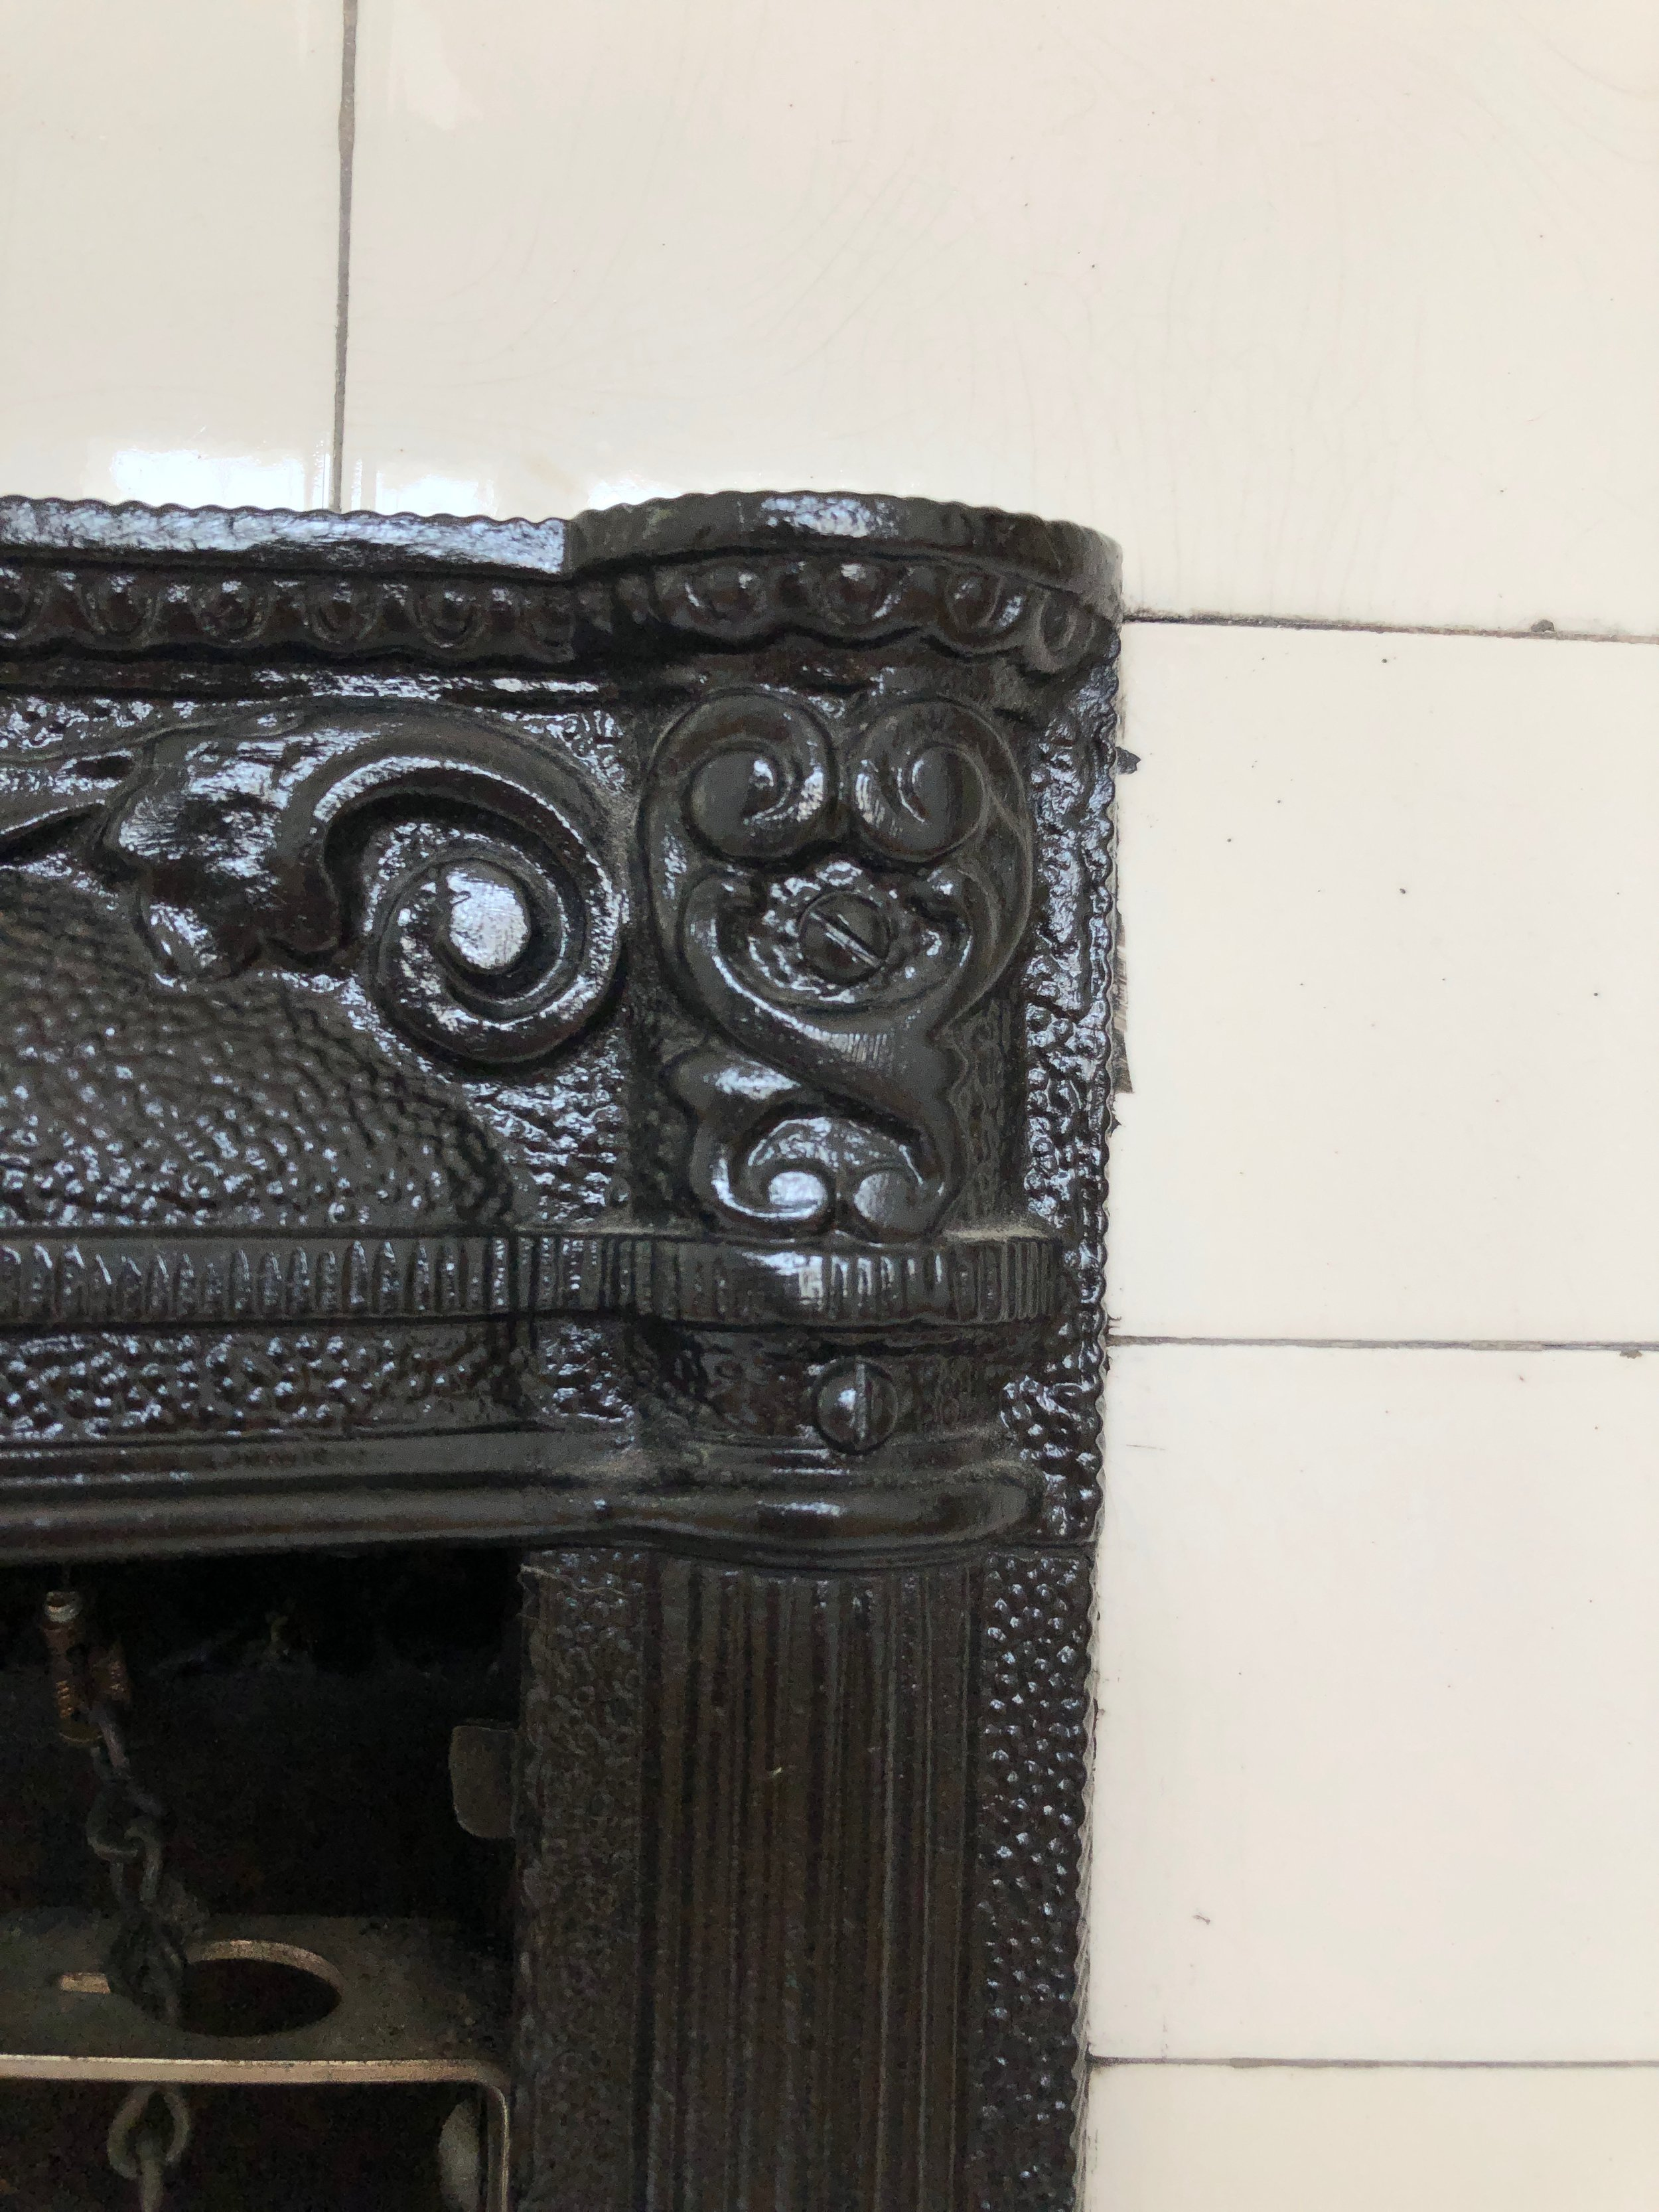 The original subway tile surrounding the fireplace in our 1924 bungalow has that crackle finish that can't be replicated today. We adore it, so we're going to try our best to save it as we renovate.